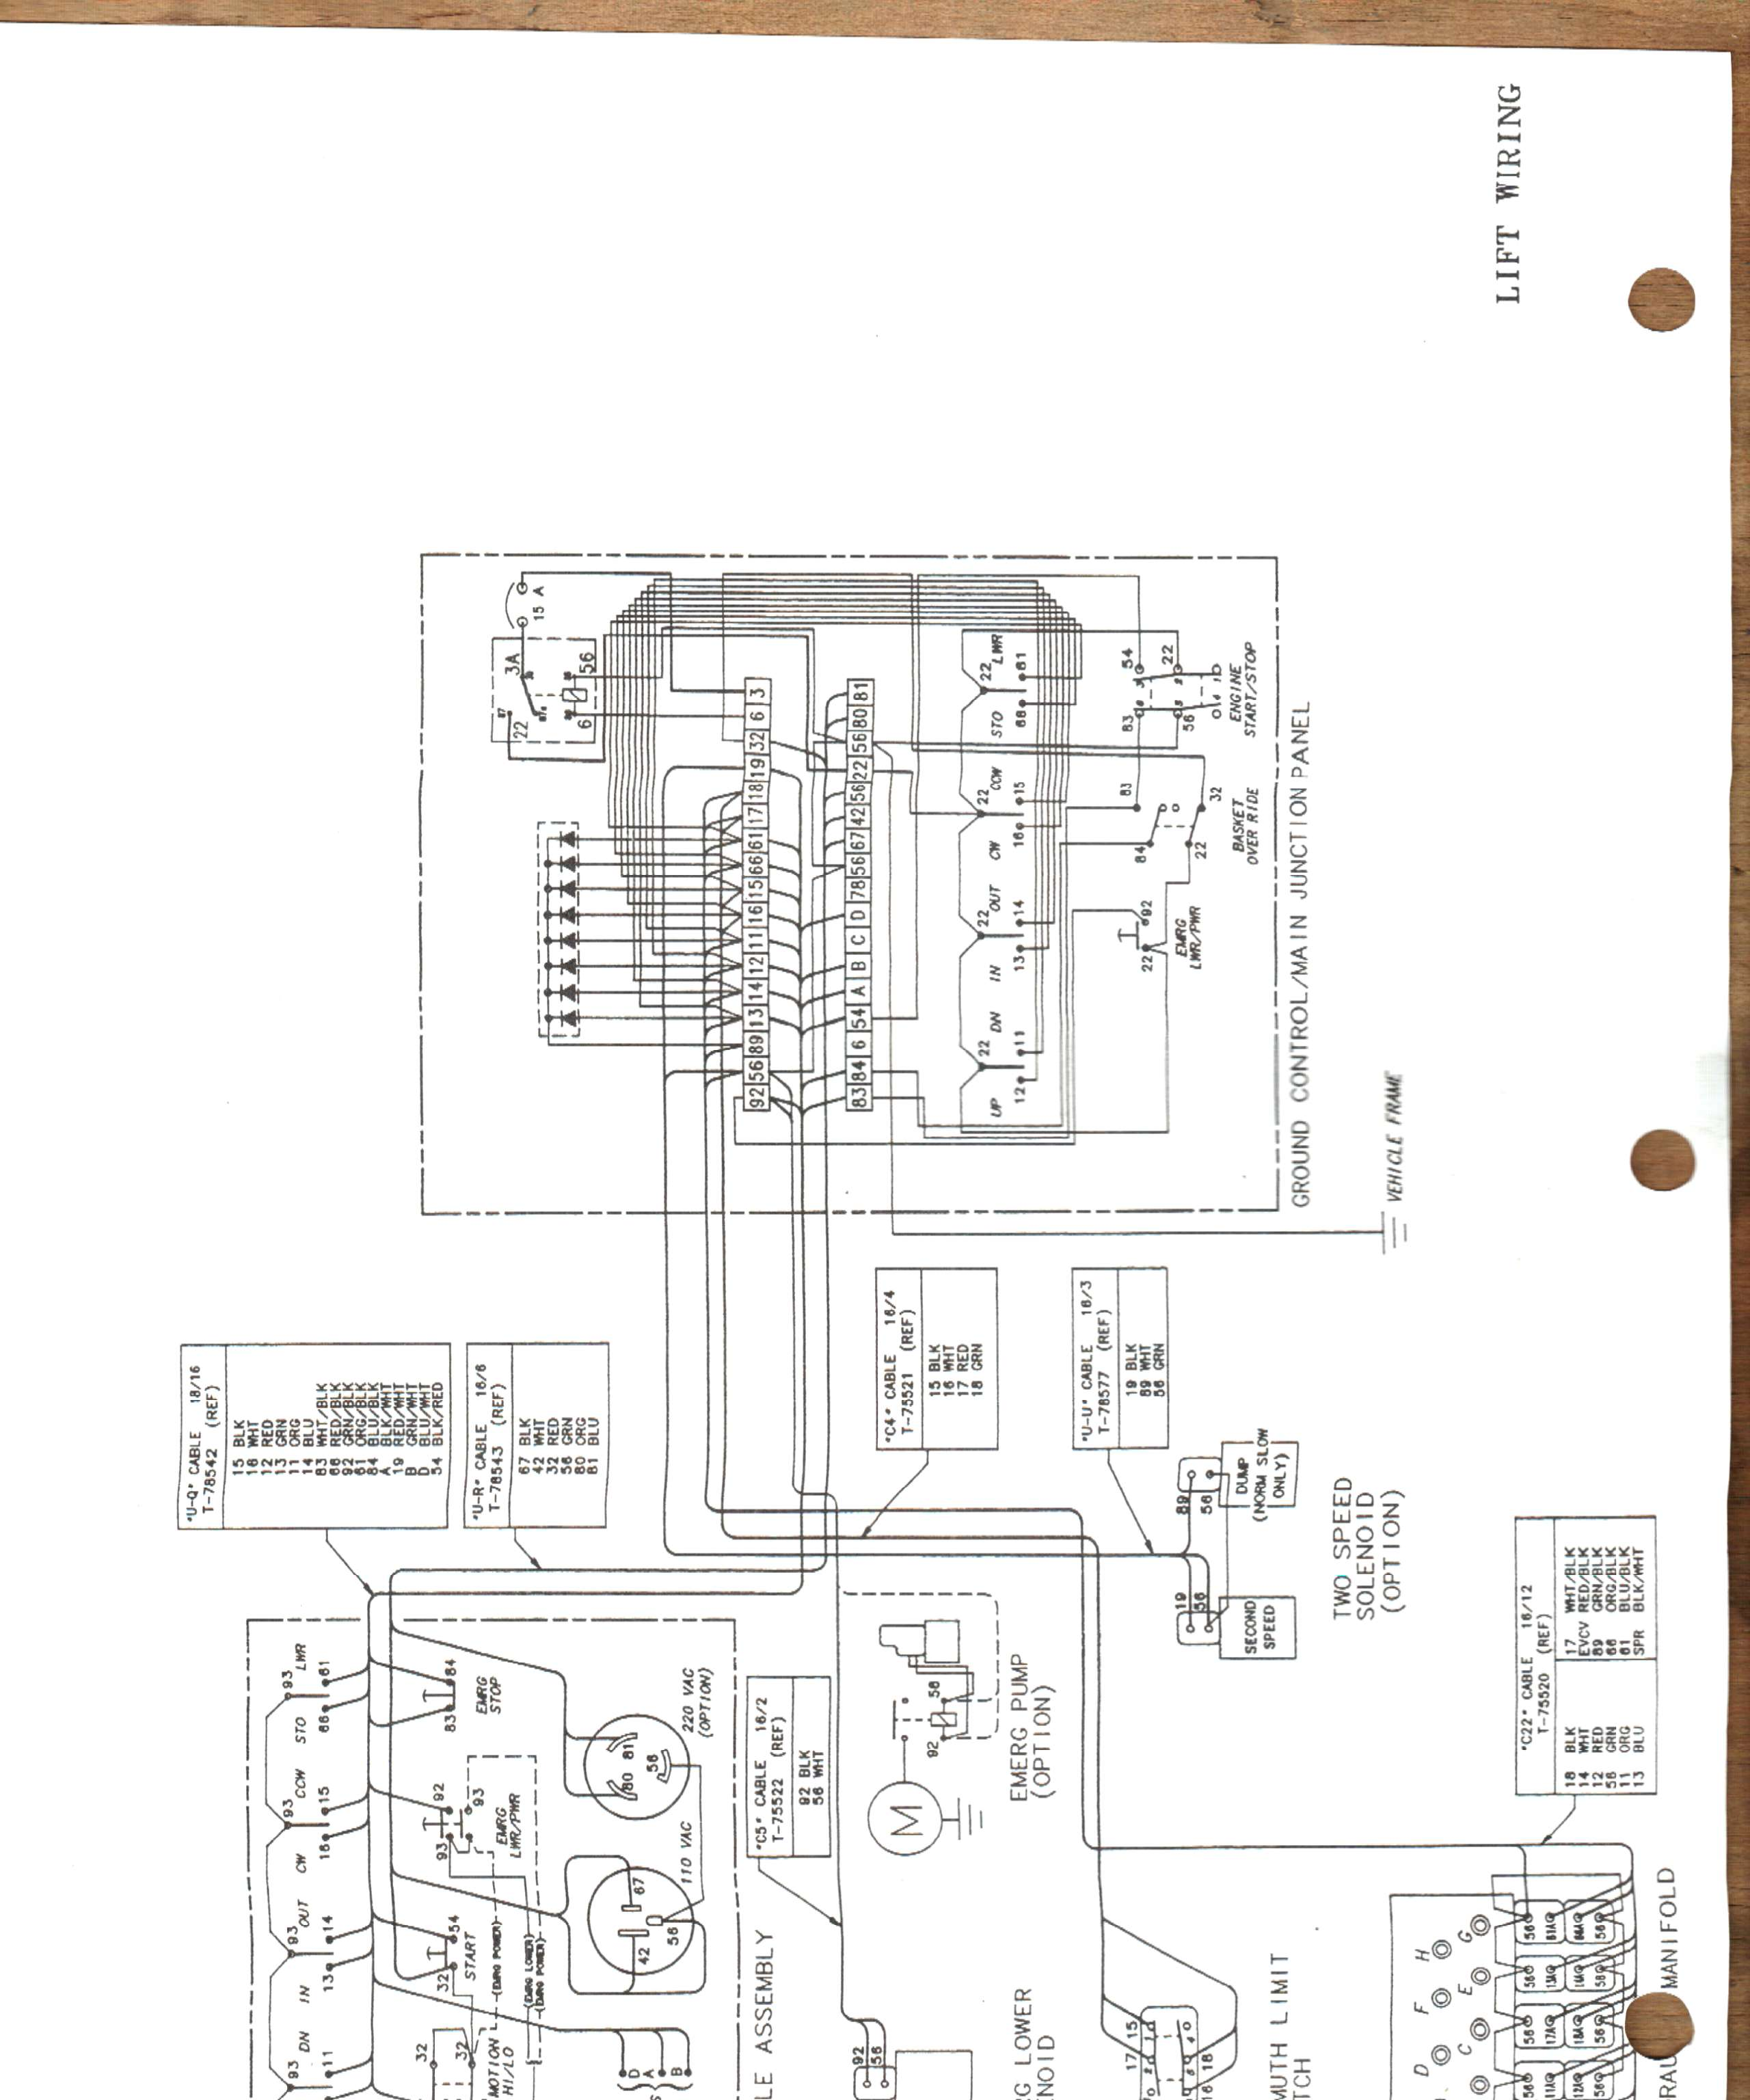 88 Ford F600 Wiring Diagram | Wiring Schematic Diagram - 11 ...  Ford F Wiring Diagram on 1982 ford f150 wiring diagram, 1992 ford l8000 wiring diagram, 84 ford f150 wiring diagram, 88 ford gt wiring diagram, 1999 ford truck wiring diagram, 96 ford f-250 wiring diagram, 2010 f150 stereo wiring diagram, 1988 ford f150 fuel system diagram, ford ignition module wiring diagram, 1988 ford f-250 wiring diagram, ford starter wiring diagram, f150 radio wiring diagram, 88 chevy silverado wiring diagram, 88 toyota camry wiring diagram, ford electronic ignition wiring diagram, 88 dodge dakota wiring diagram, 1956 ford wiring diagram, ford truck engine wiring diagram, 88 nissan sentra wiring diagram, 03 f150 wiring diagram,